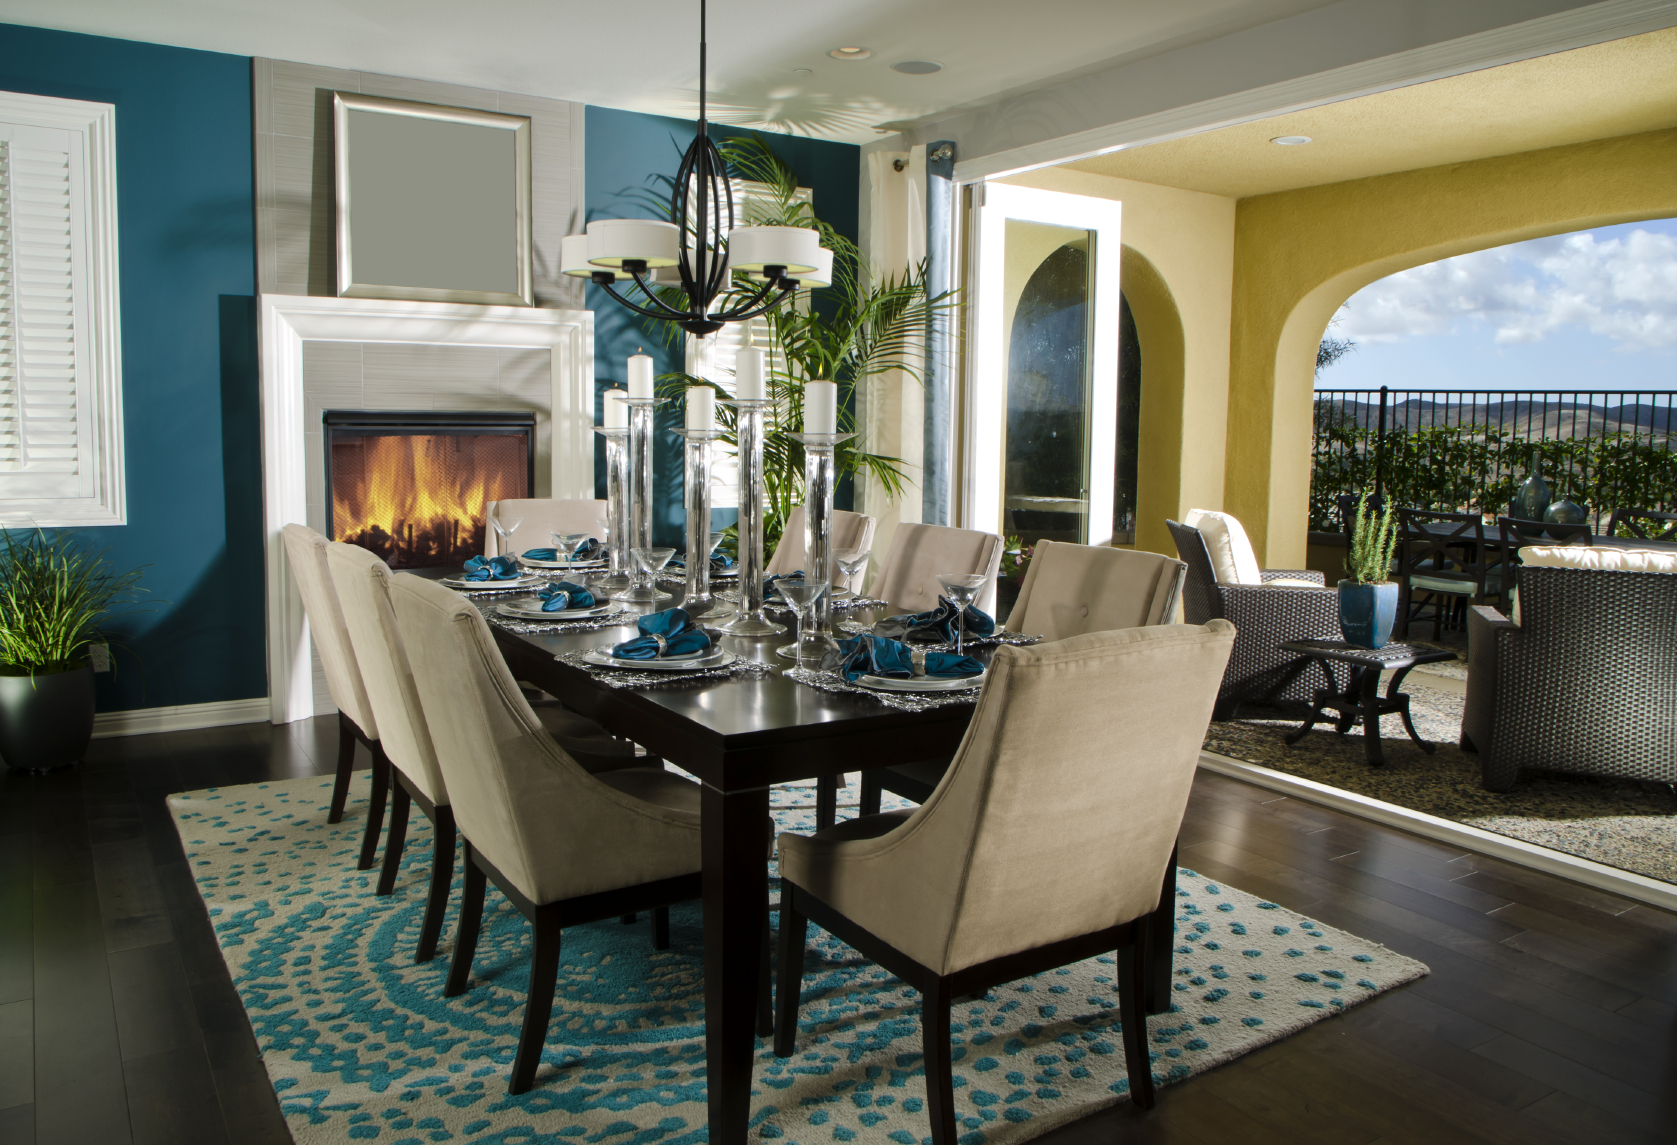 Teal Dining Room_iStock_000023394568_Medium